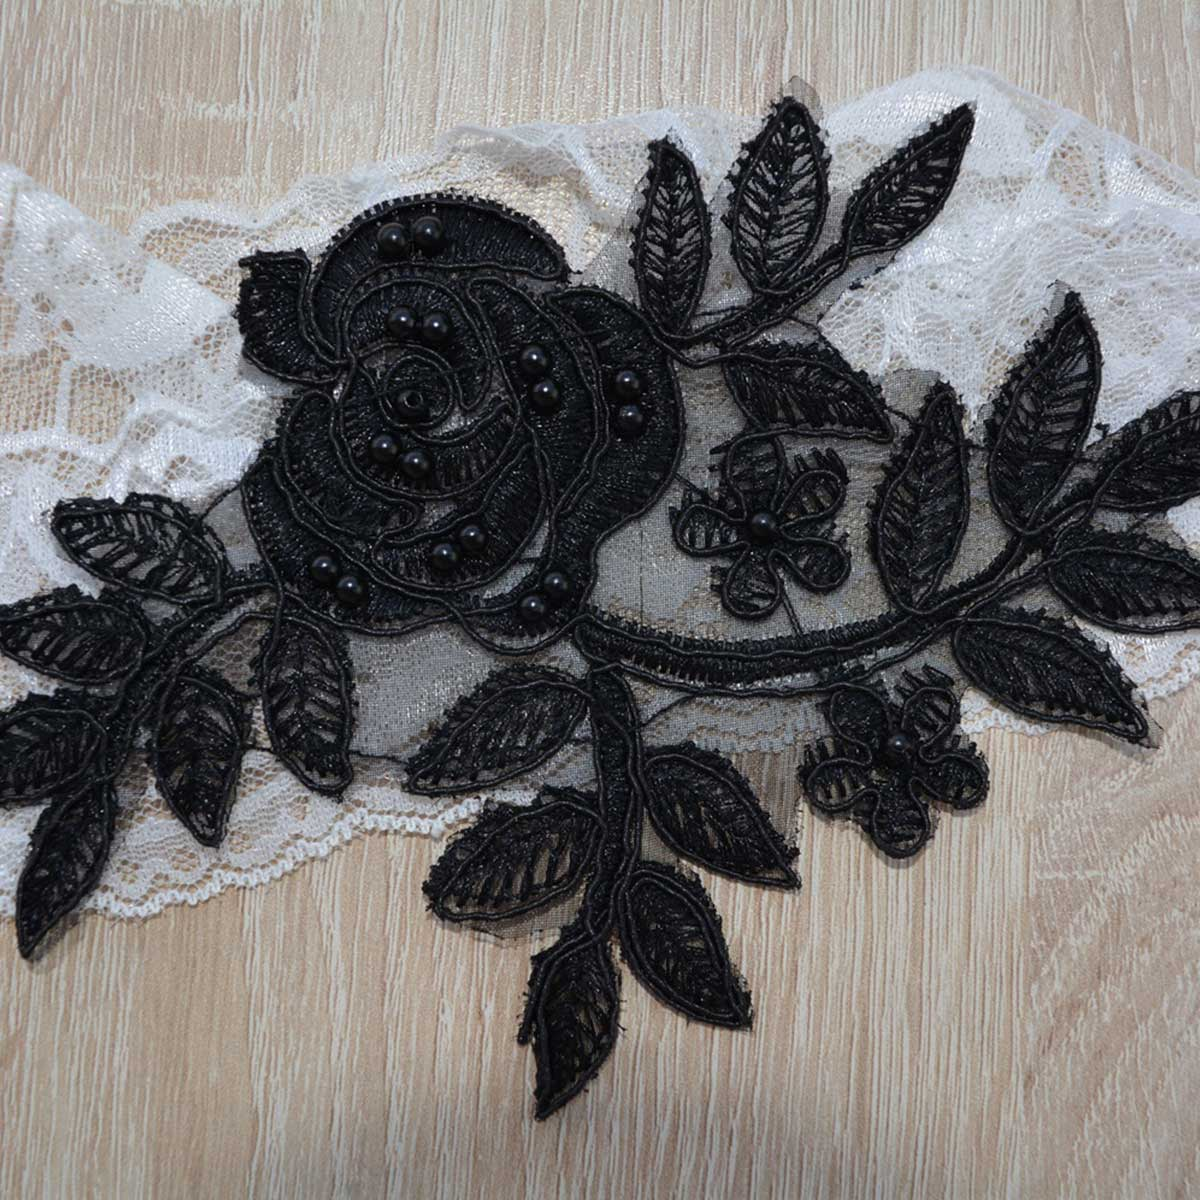 White Bridal Garter With Black Flower Lace Applique & Pearls - Wedding Garter - SuzannaM Designs